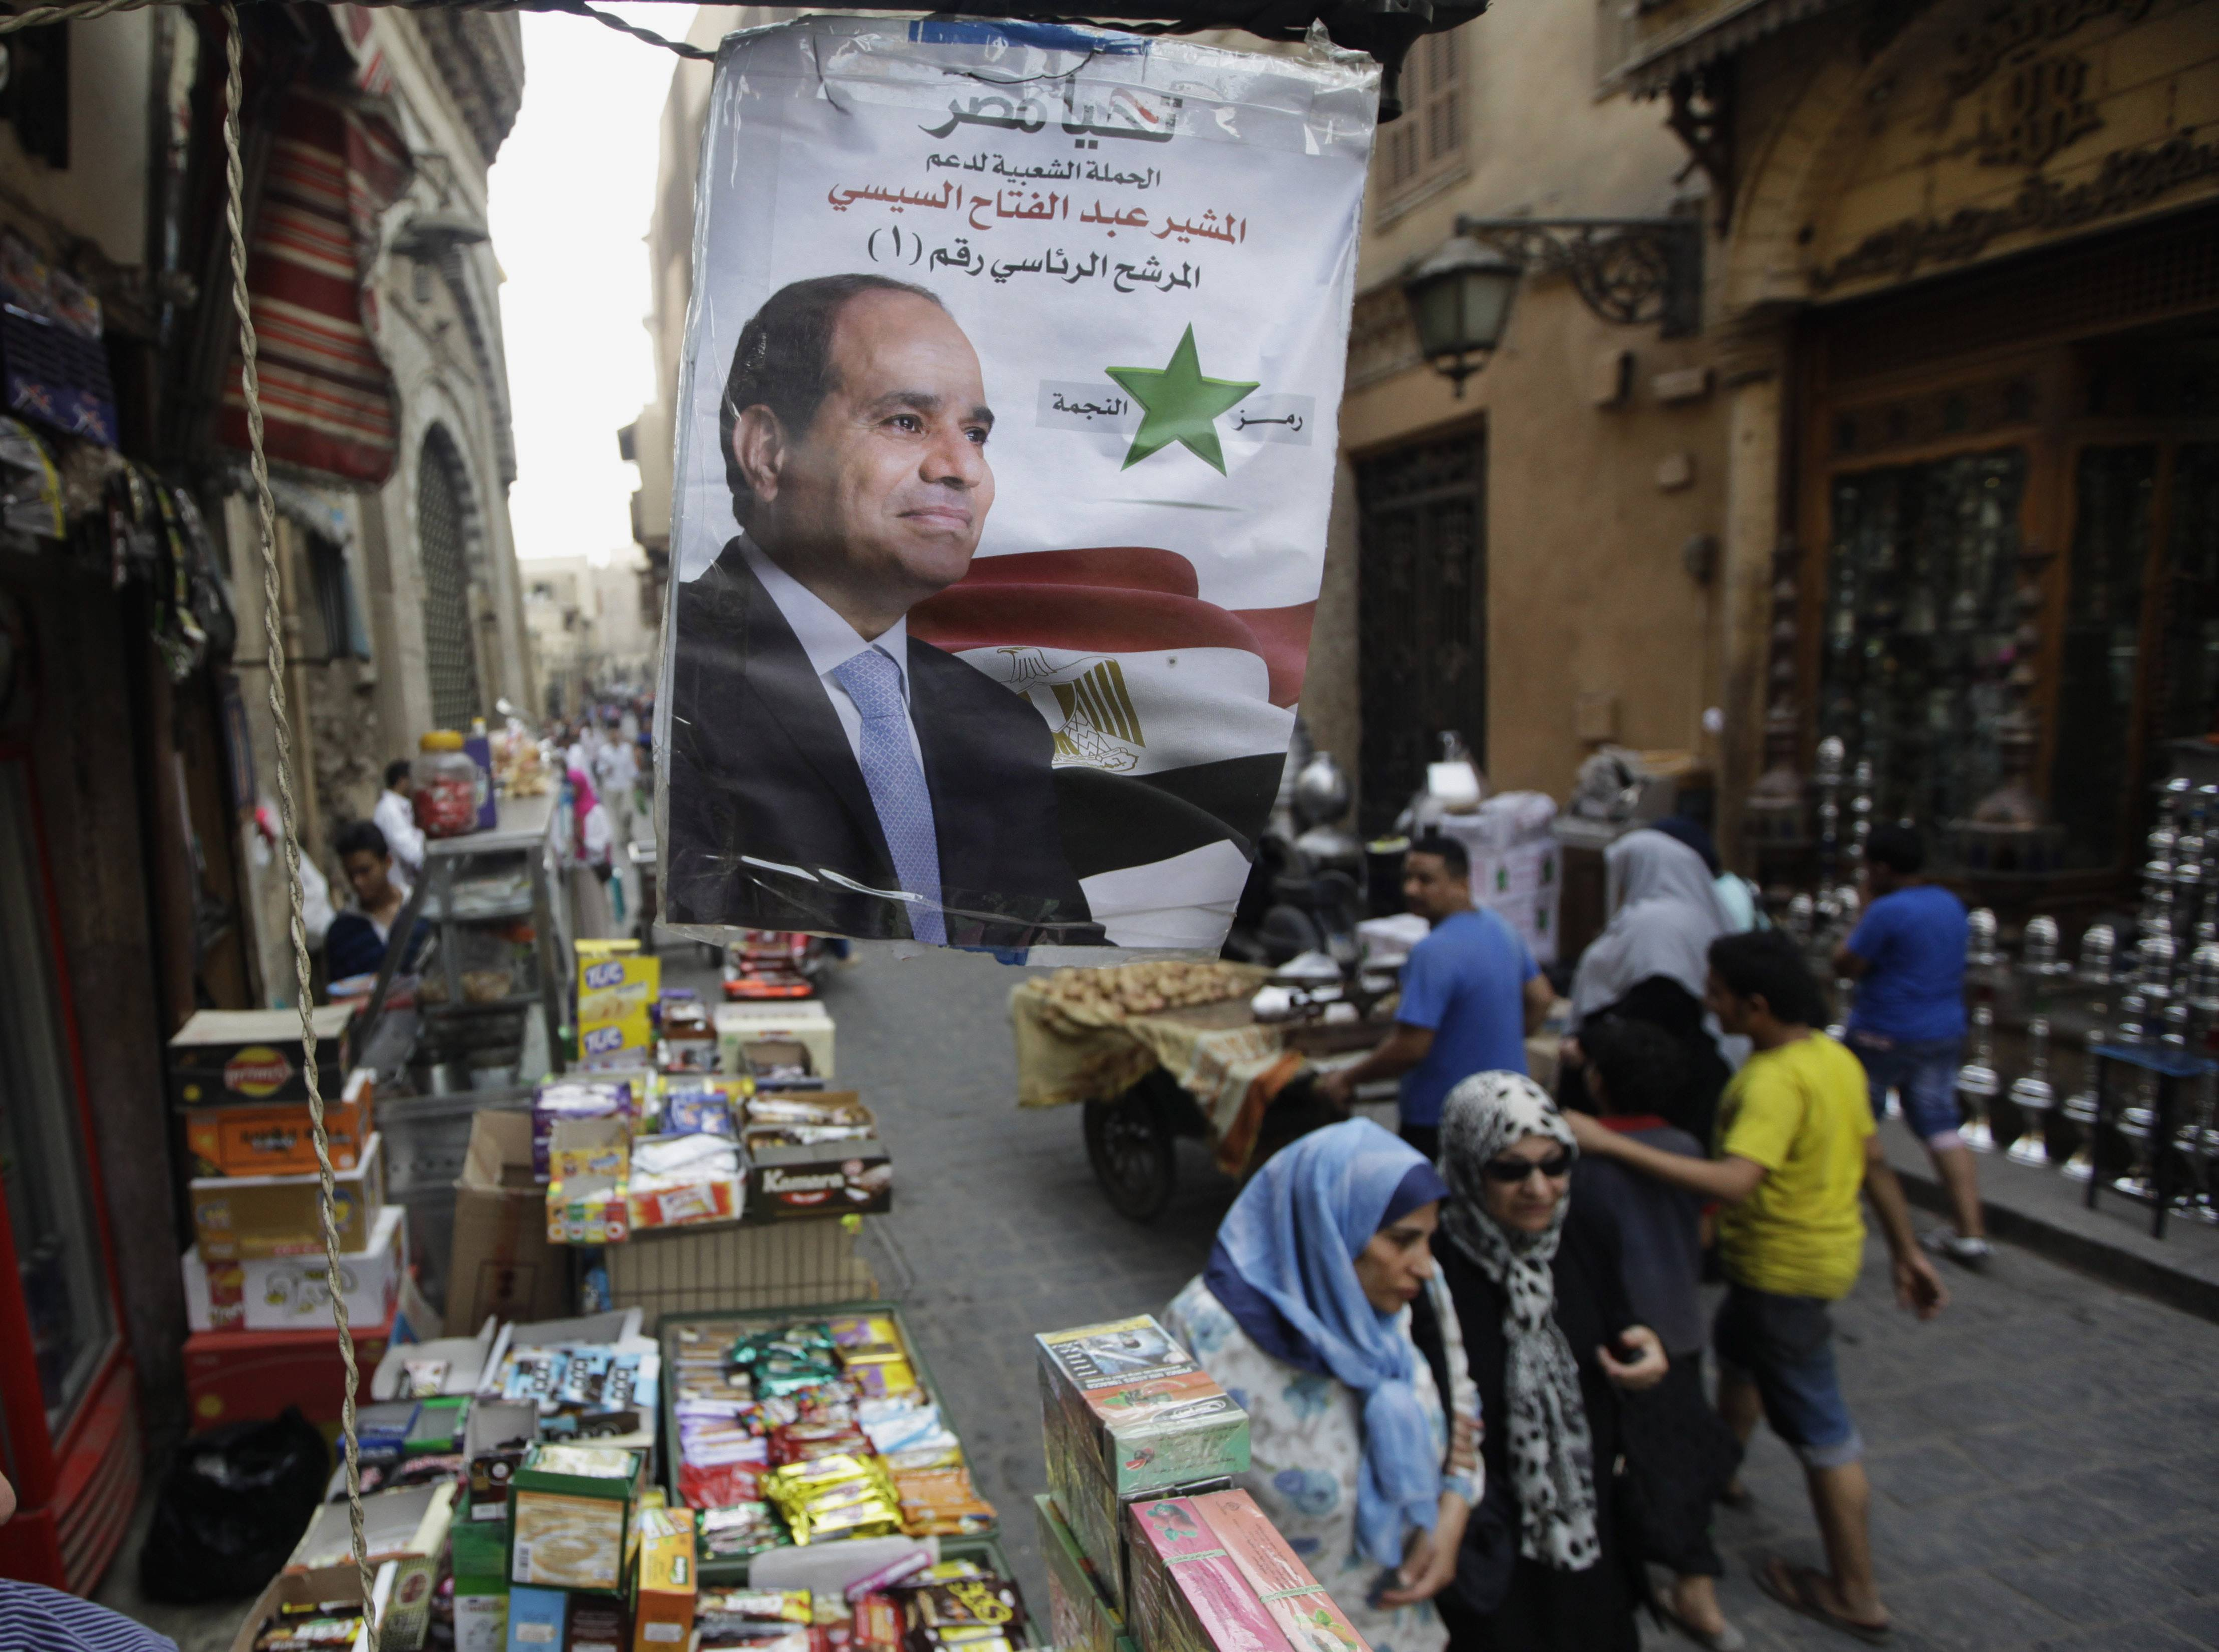 Egyptian shoppers walk under a poster supporting presidential candidate Abdel-Fattah el-Sissi, the country's former military chief, in Cairo, Egypt, Saturday. Considered all but certain to win is el-Sissi, the man who removed the former president, Mohammed Morsi.